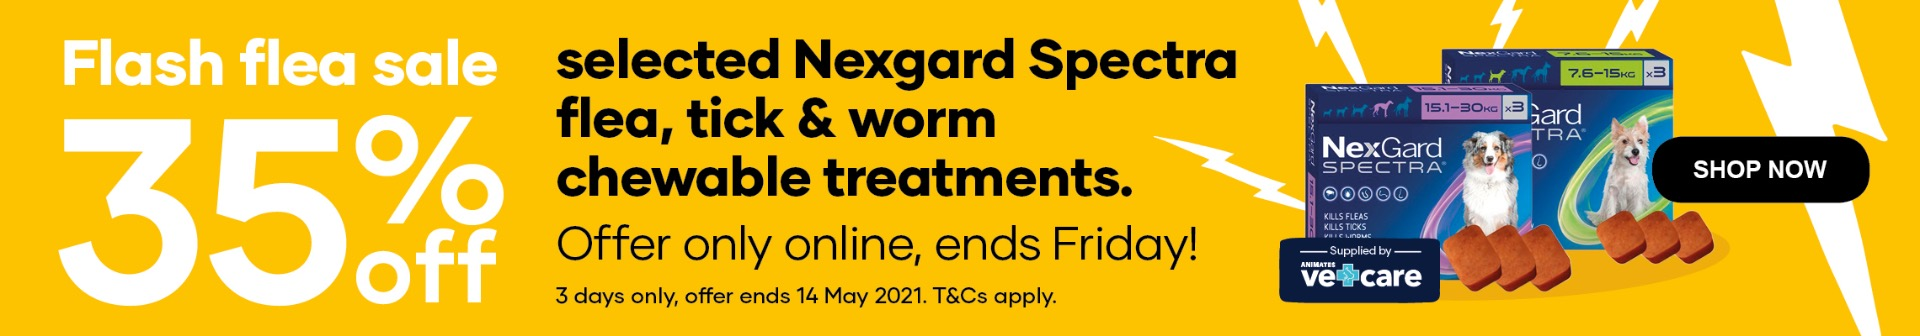 Flash flea sale | 35% off selected Nexgard Spectra flea, tick & worm  chewable treatments. Offer only online, ends Friday! 3 days only, offer ends 14 May 2021. T&Cs apply.